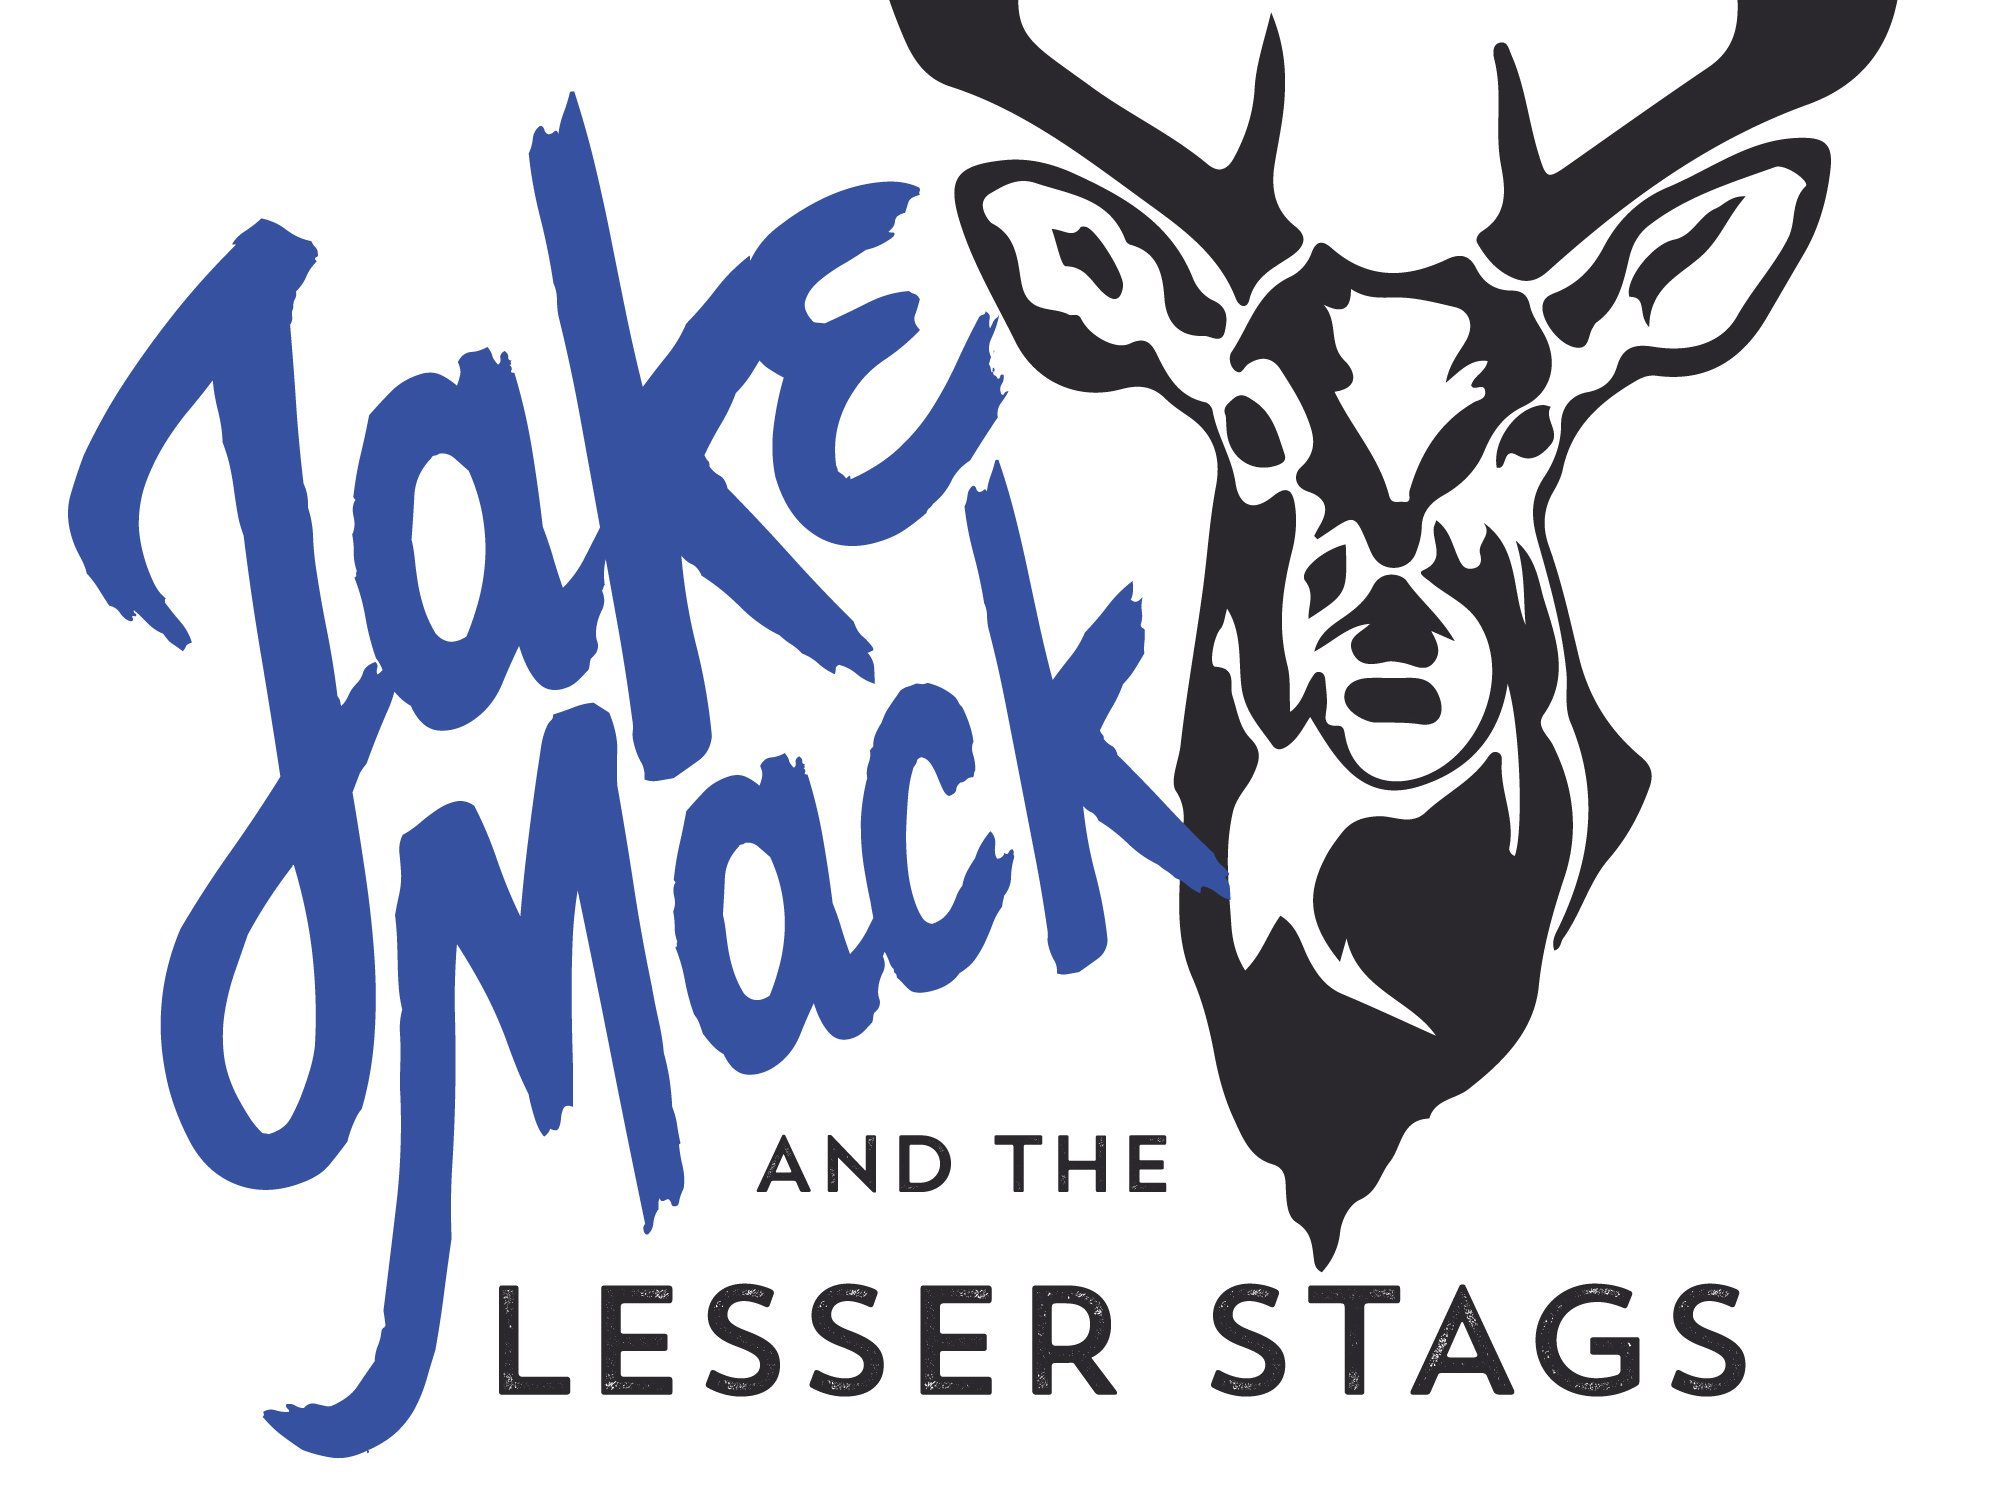 Image for Jake Mack and The Lesser Stags